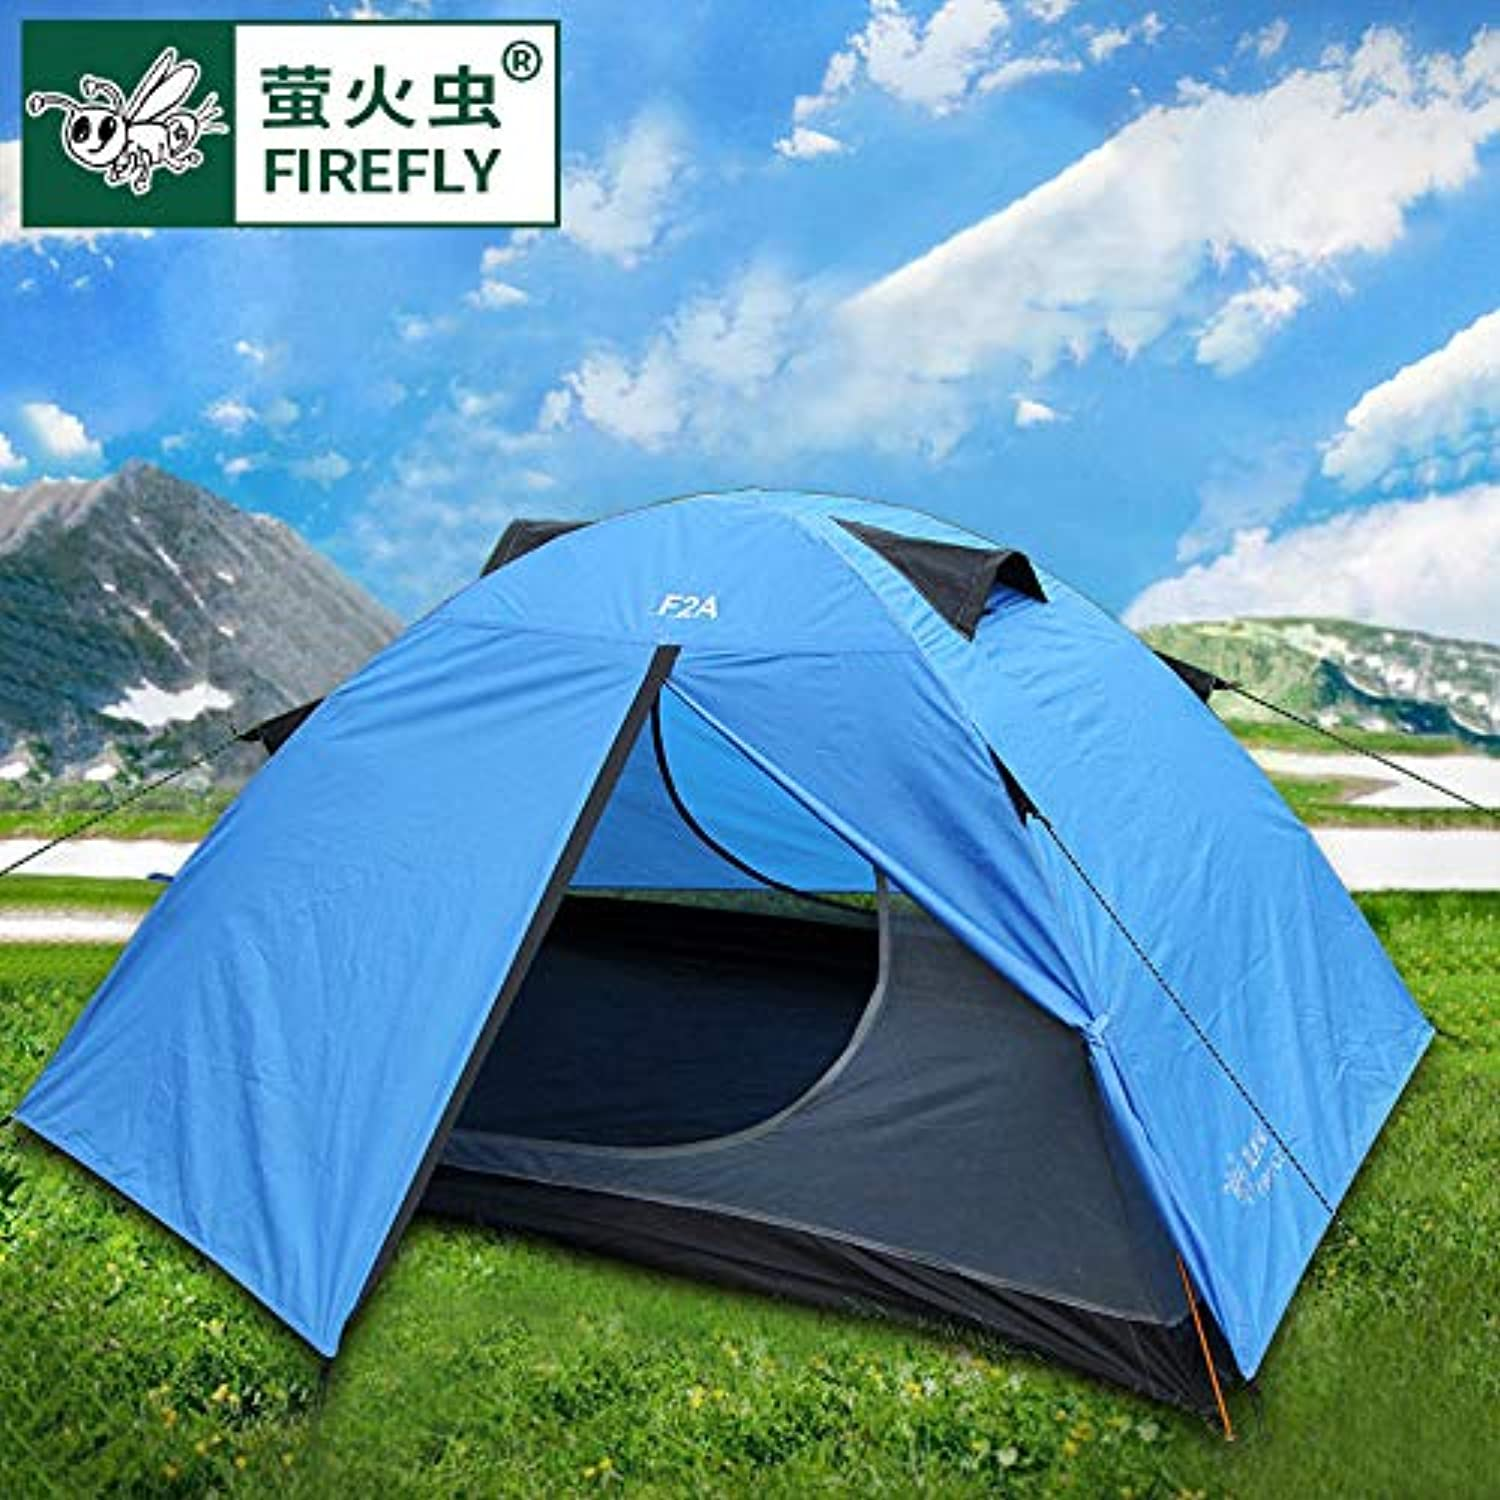 Firefly Aluminum Pole Double Weatherproof Outdoor Camping Camping Equipment Mountaineering Hand on 2 Person Tent 34